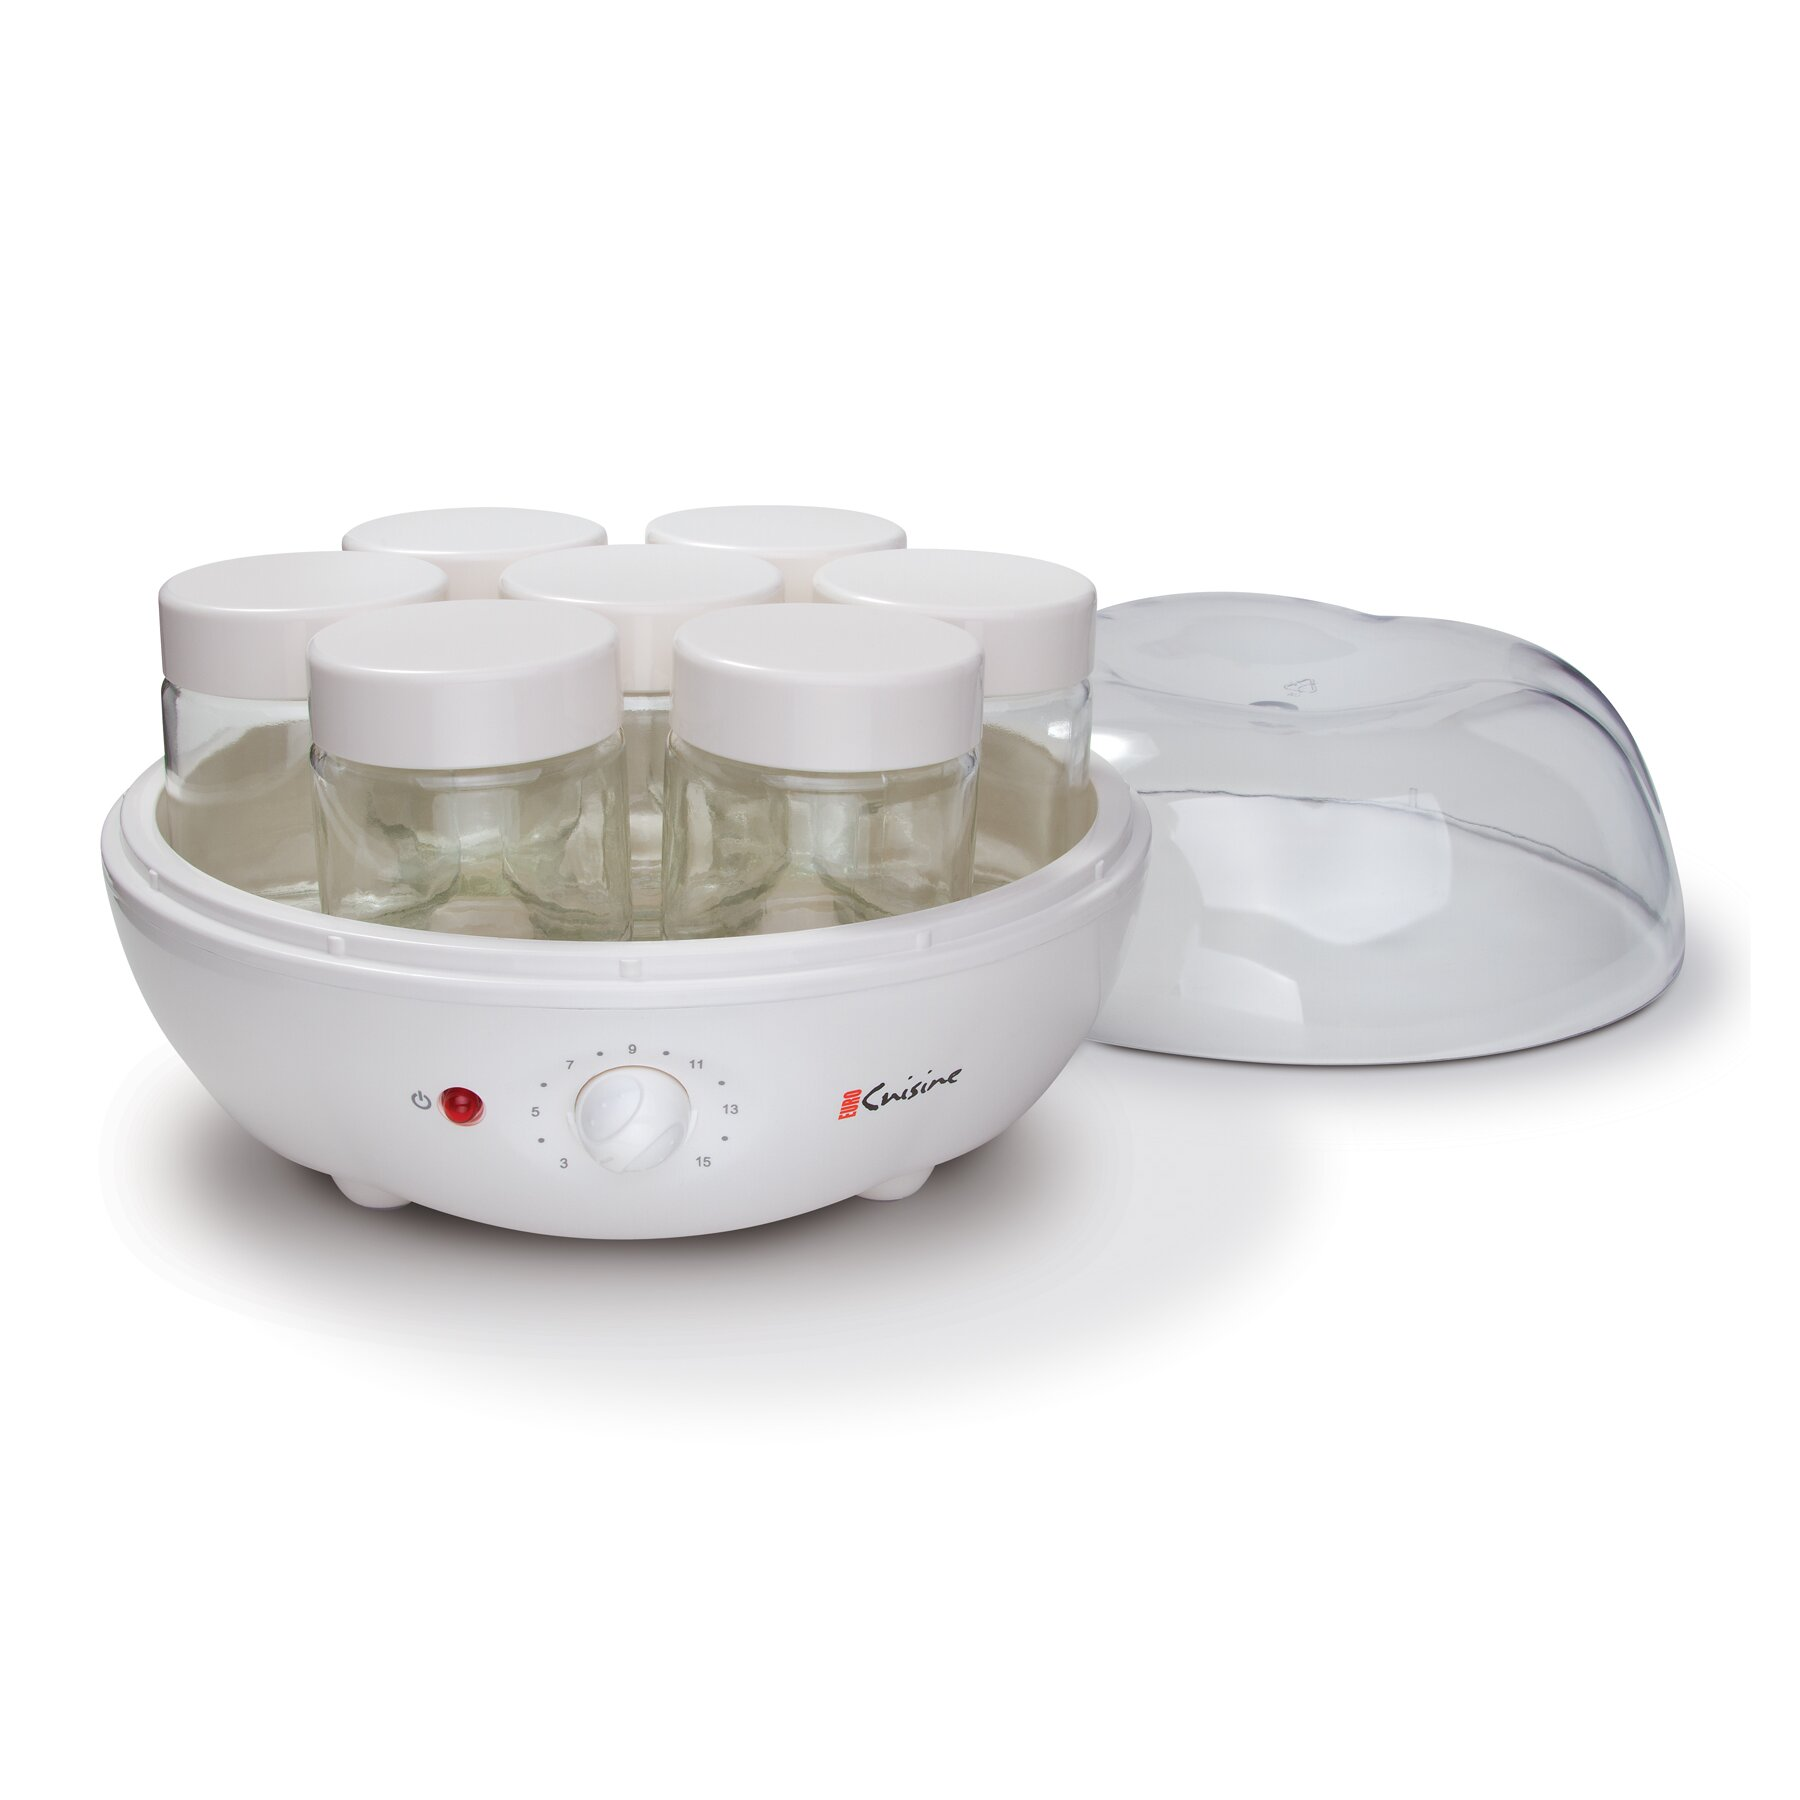 Euro cuisine automatic yogurt maker reviews wayfair for Automatic yogurt maker by euro cuisine